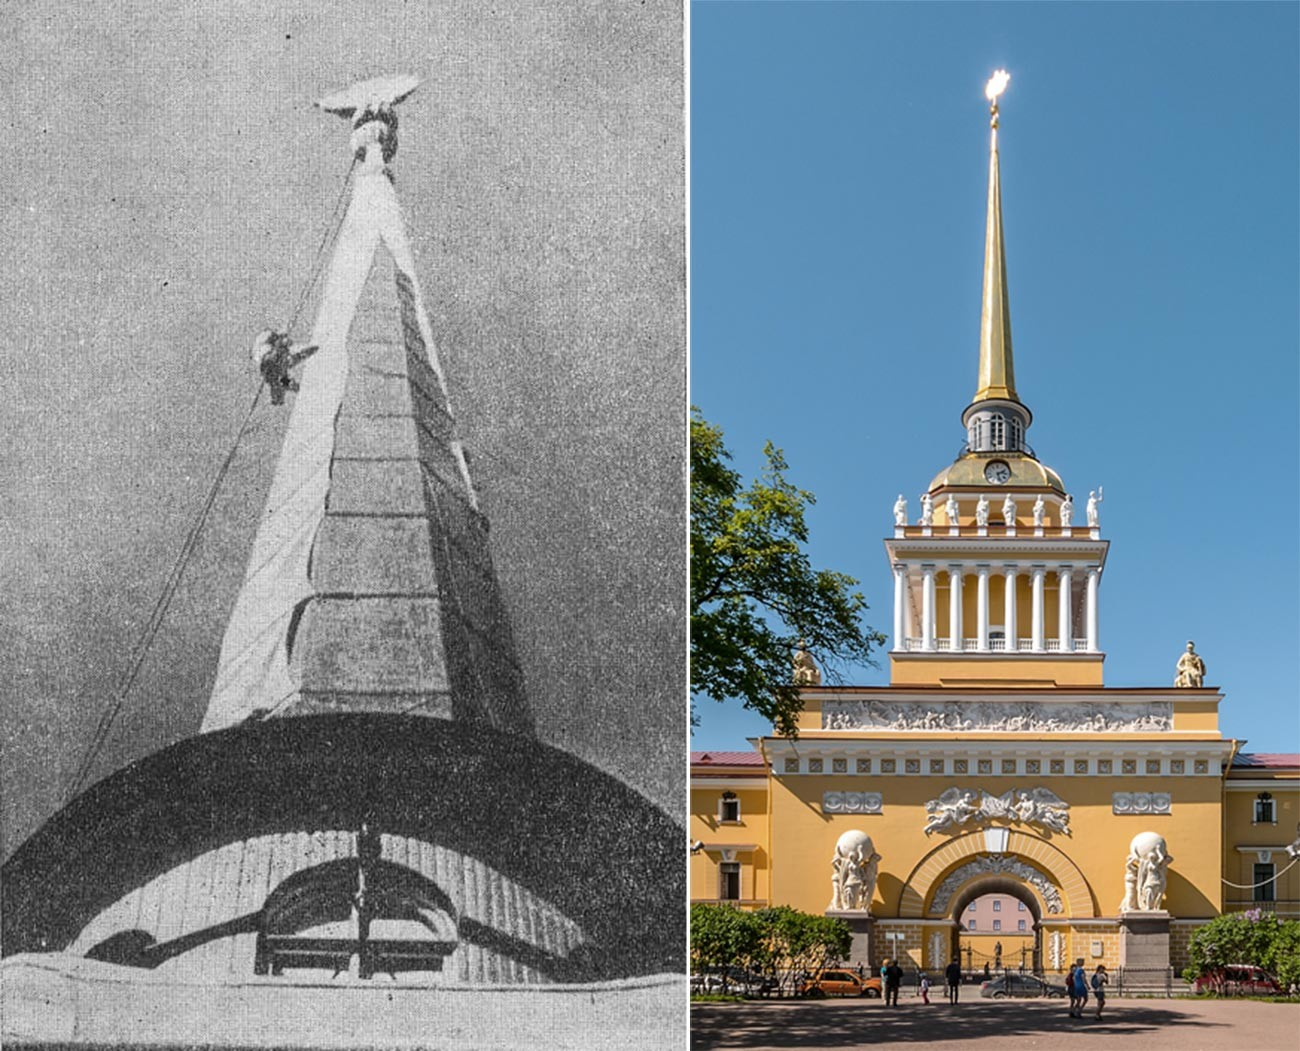 The spire of the Admiralty.